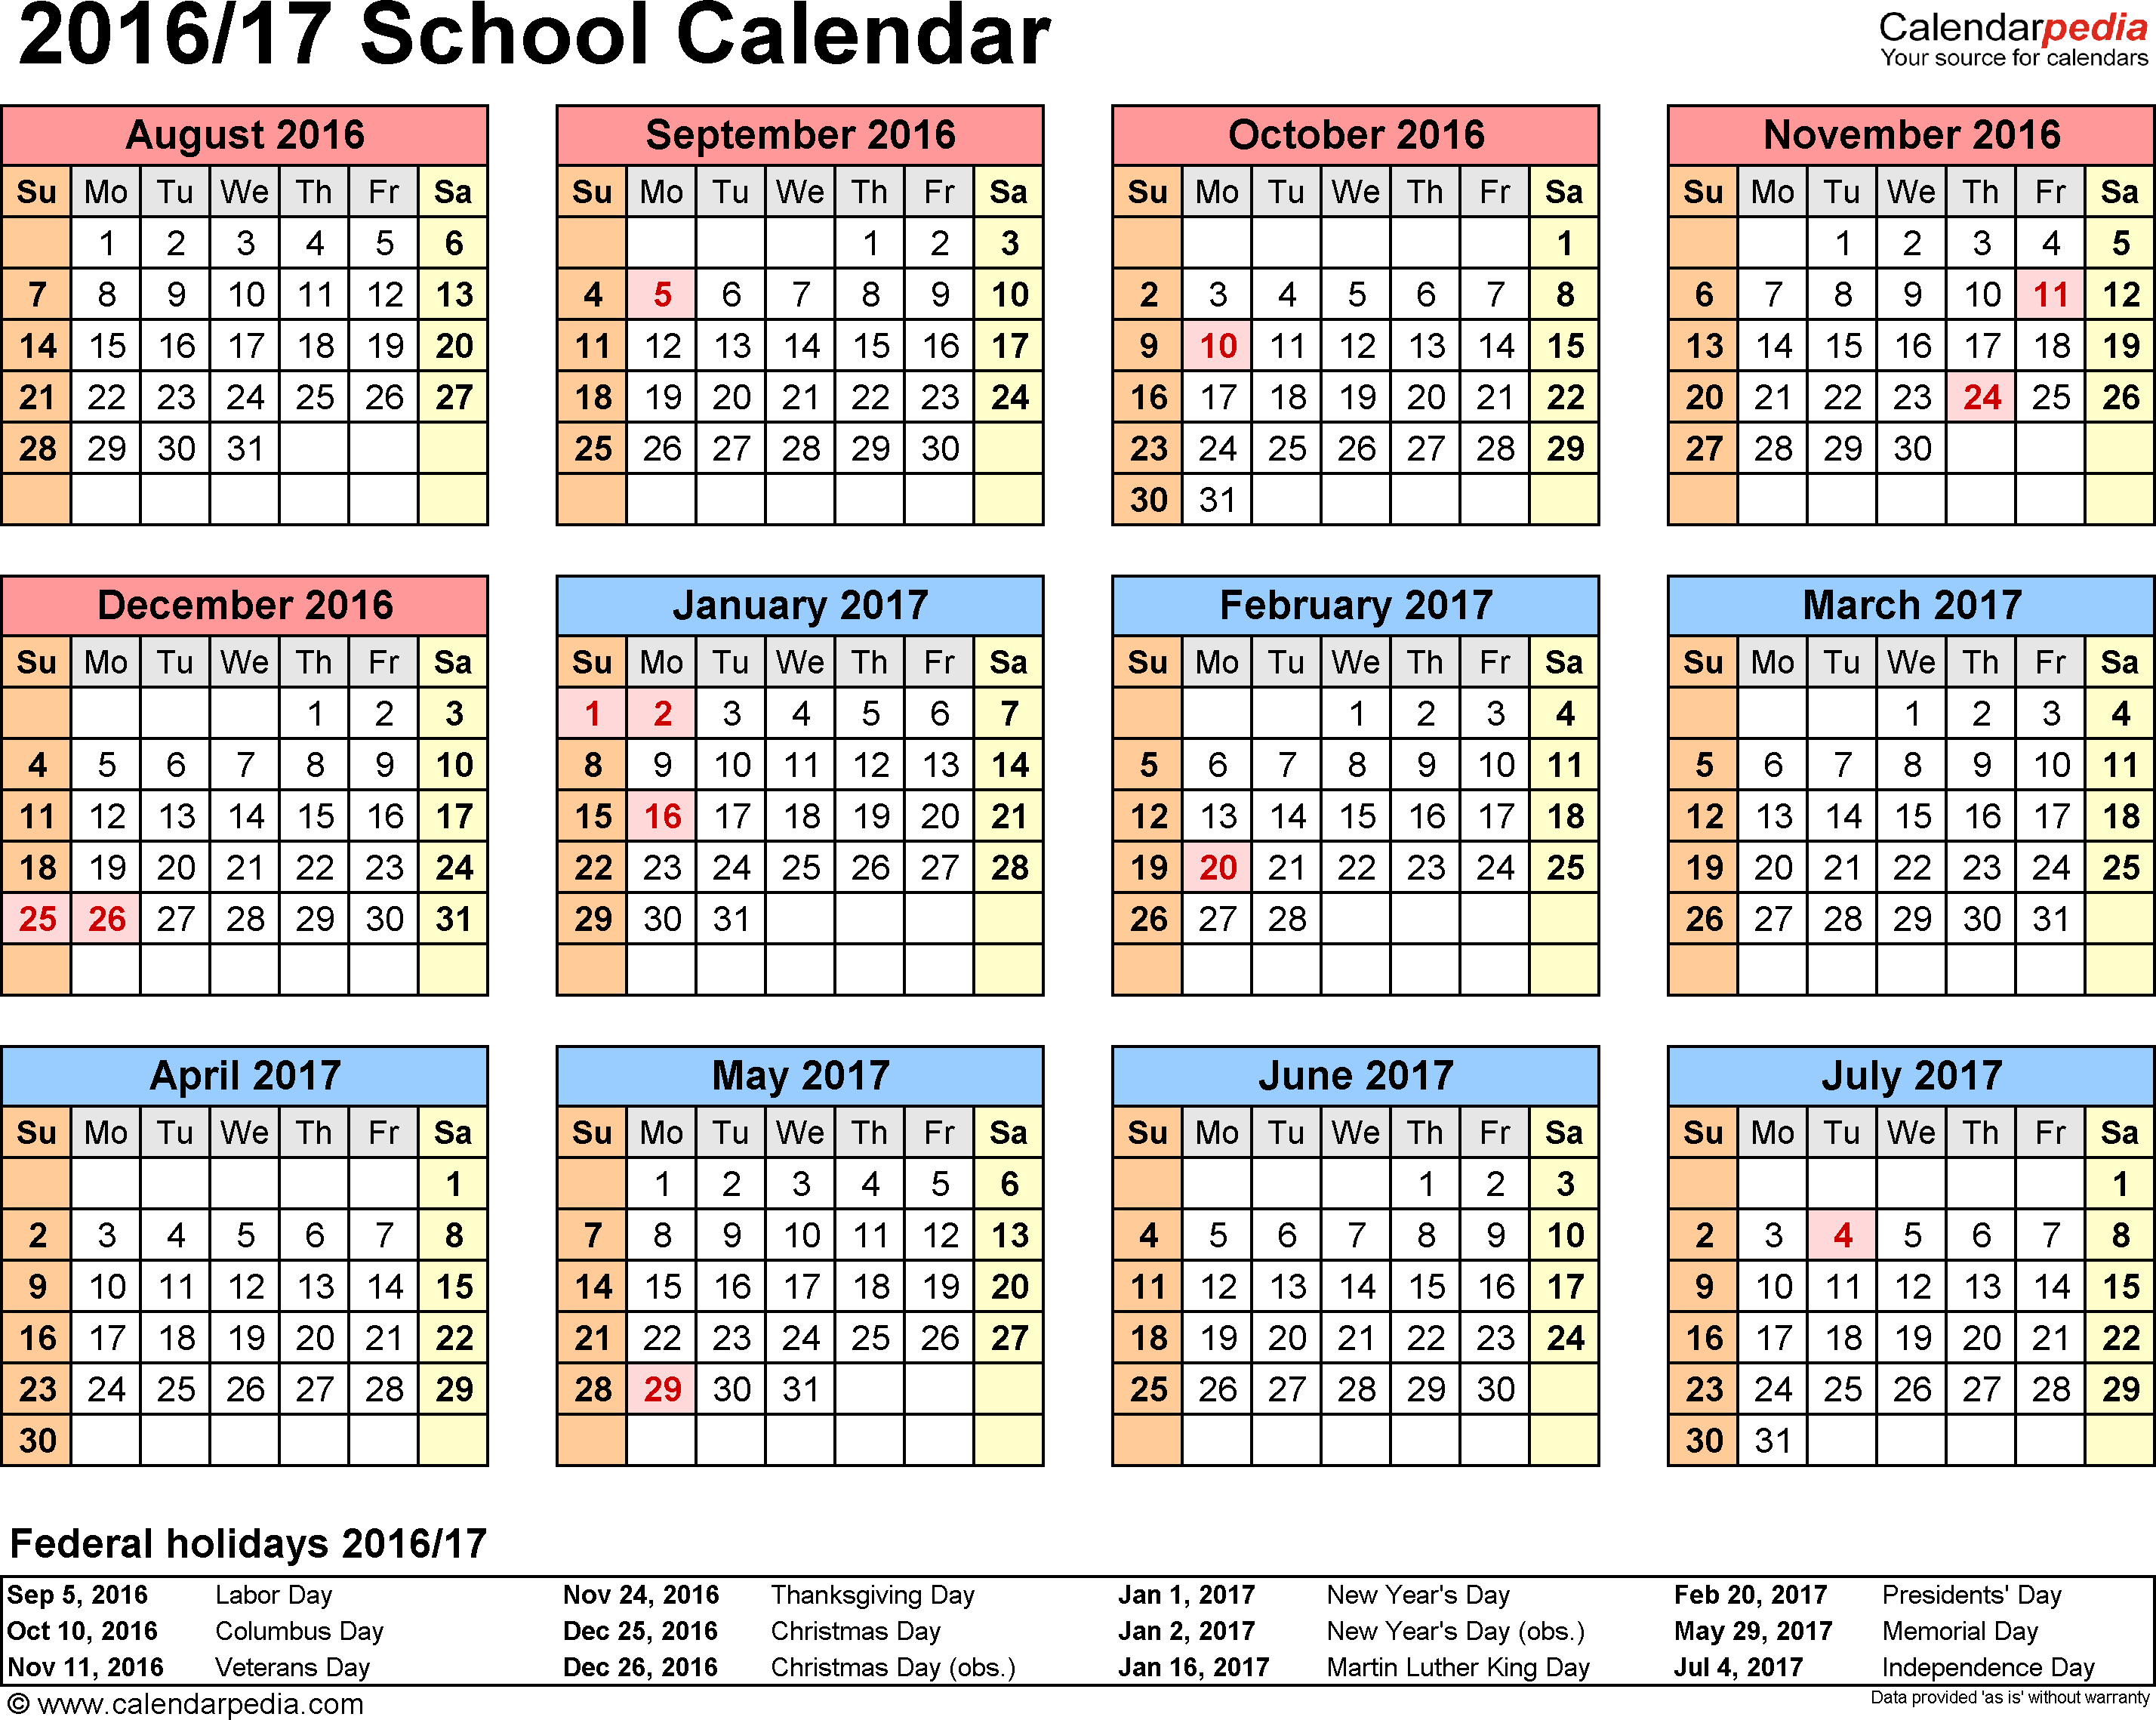 Template 4: School calendar 2016/17 for Excel, landscape orientation, year at a glance, 1 page